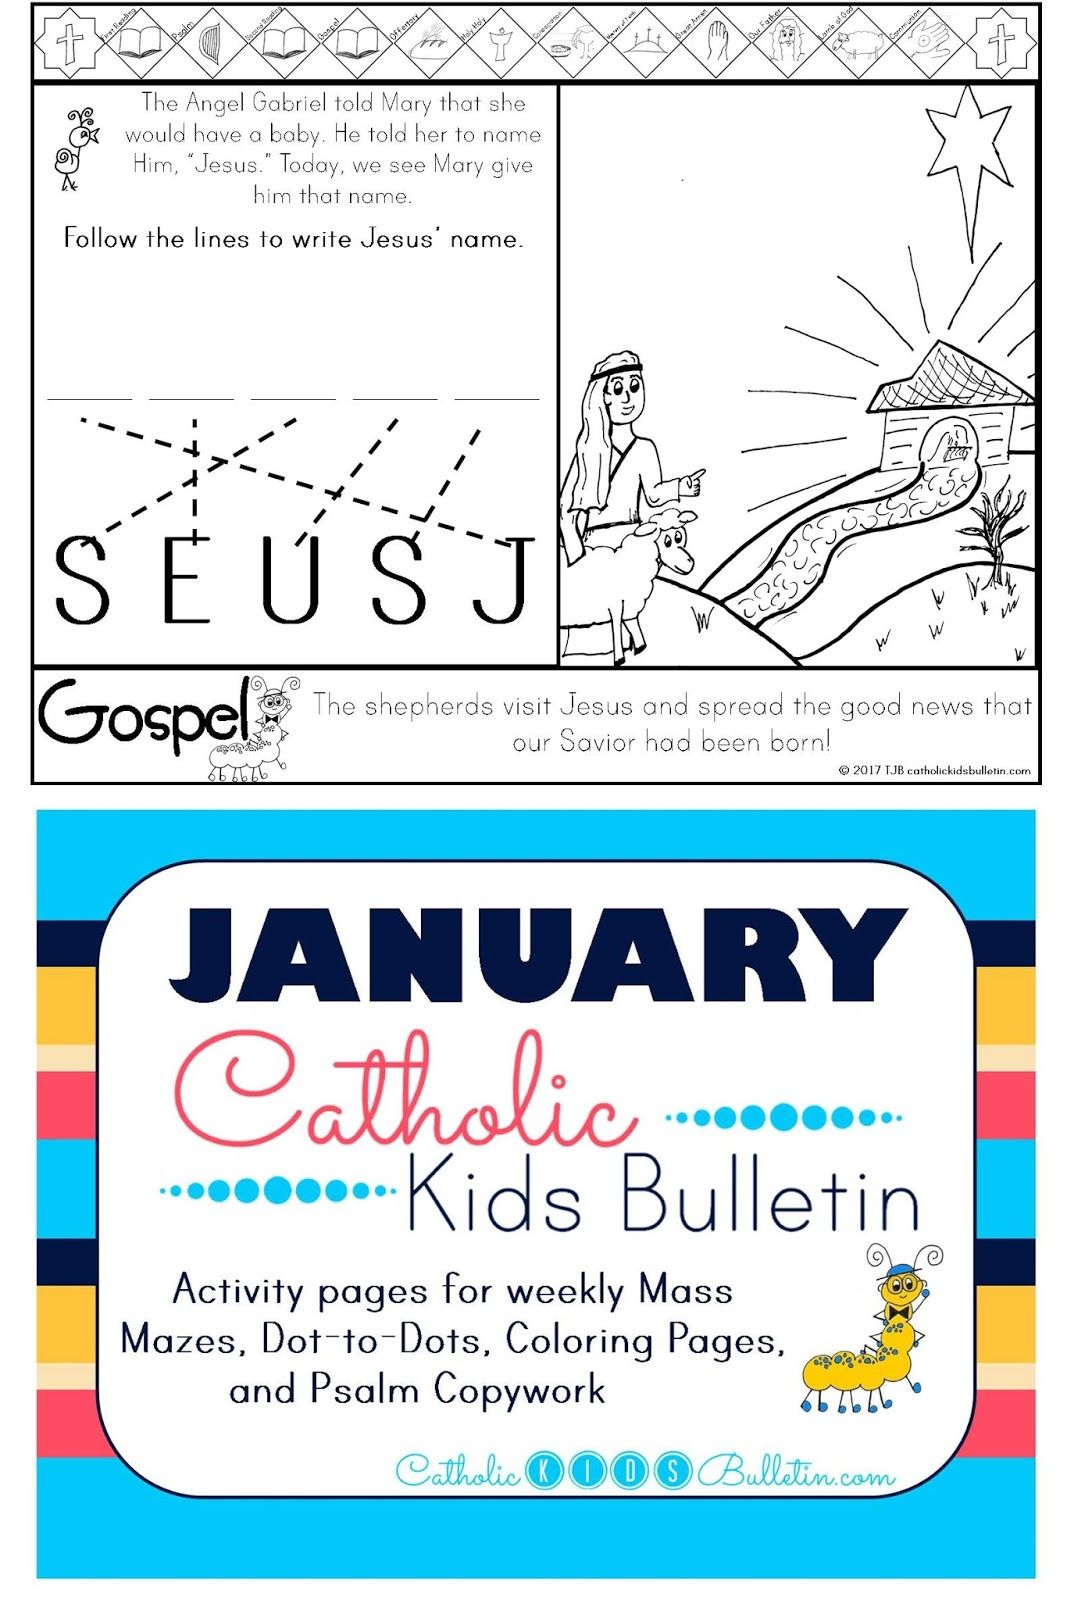 Free Catholic Mass Bulletins And Coloring Pages Luke 2 16 21 Shepherds Visit Baby Jesus